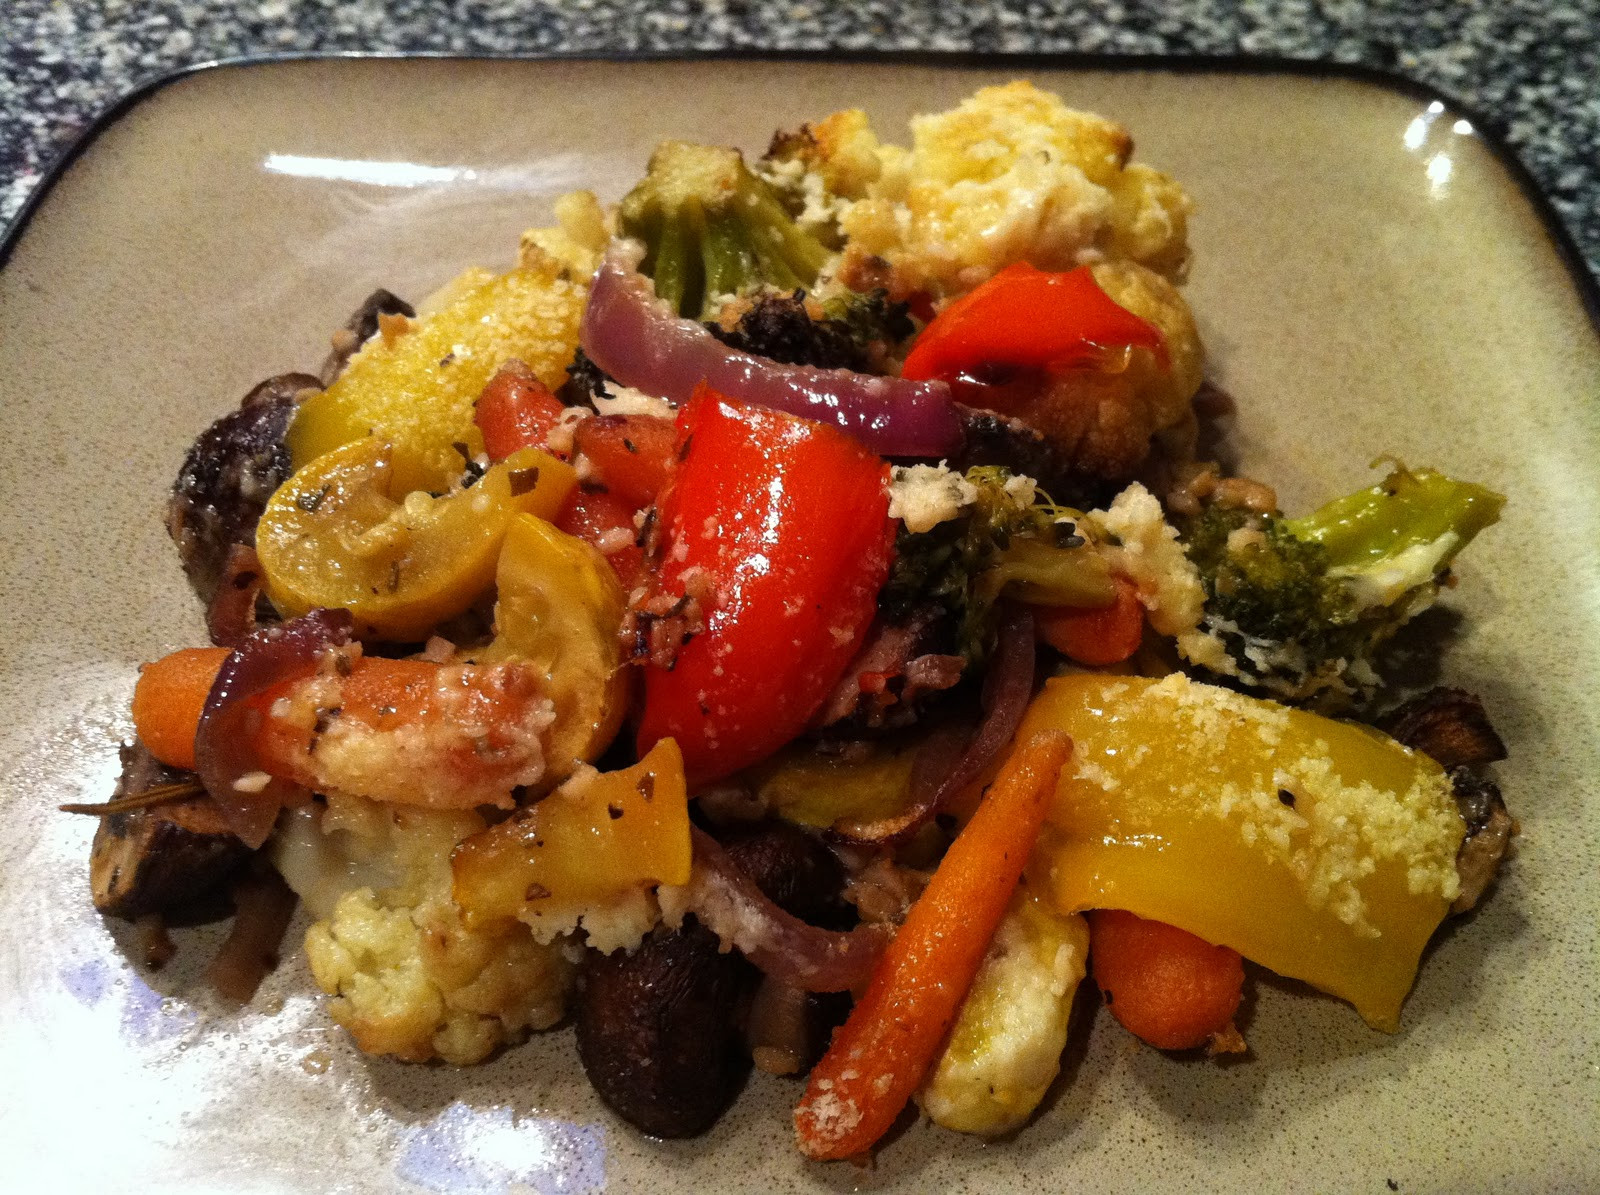 Roasted Vegetables Oven  Garlic Rosemary Oven Roasted Ve ables with Parmesan